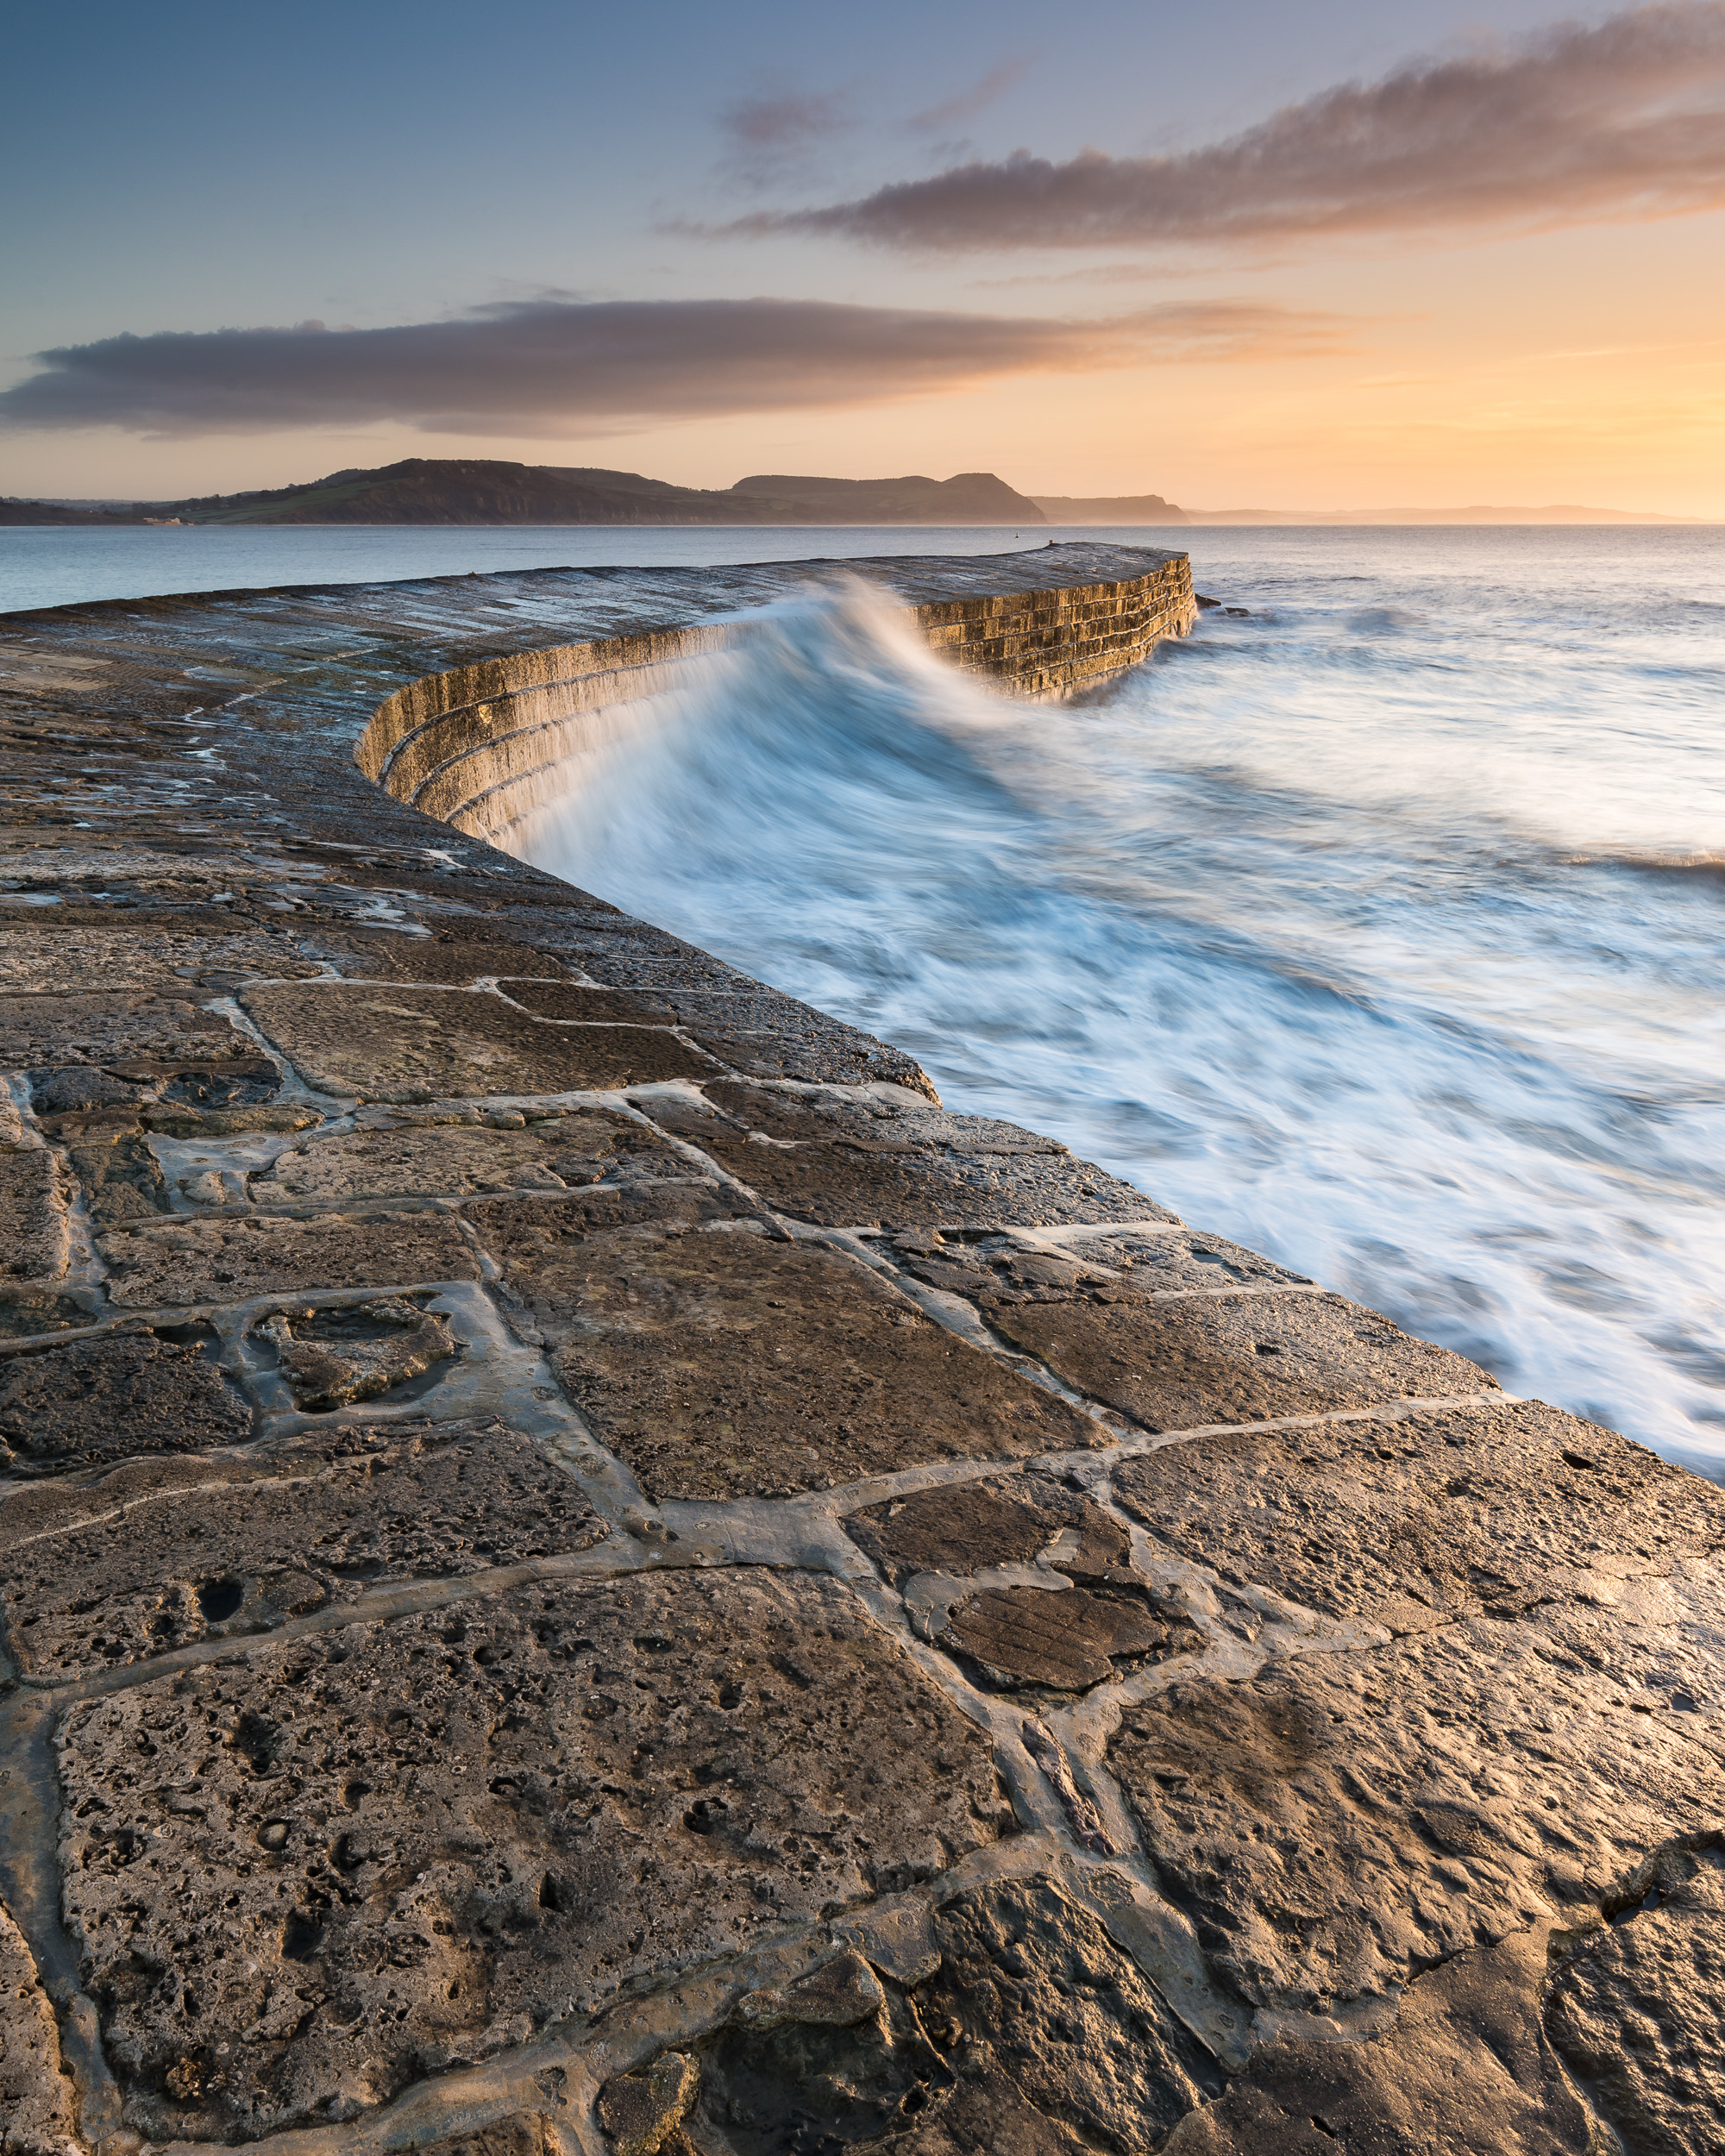 The Cobb - Nikon D750, Nikkor 16-35 f/4 at 22 mm, f/13, 0.6 seconds, ISO 100, Lee Filters ND Grad